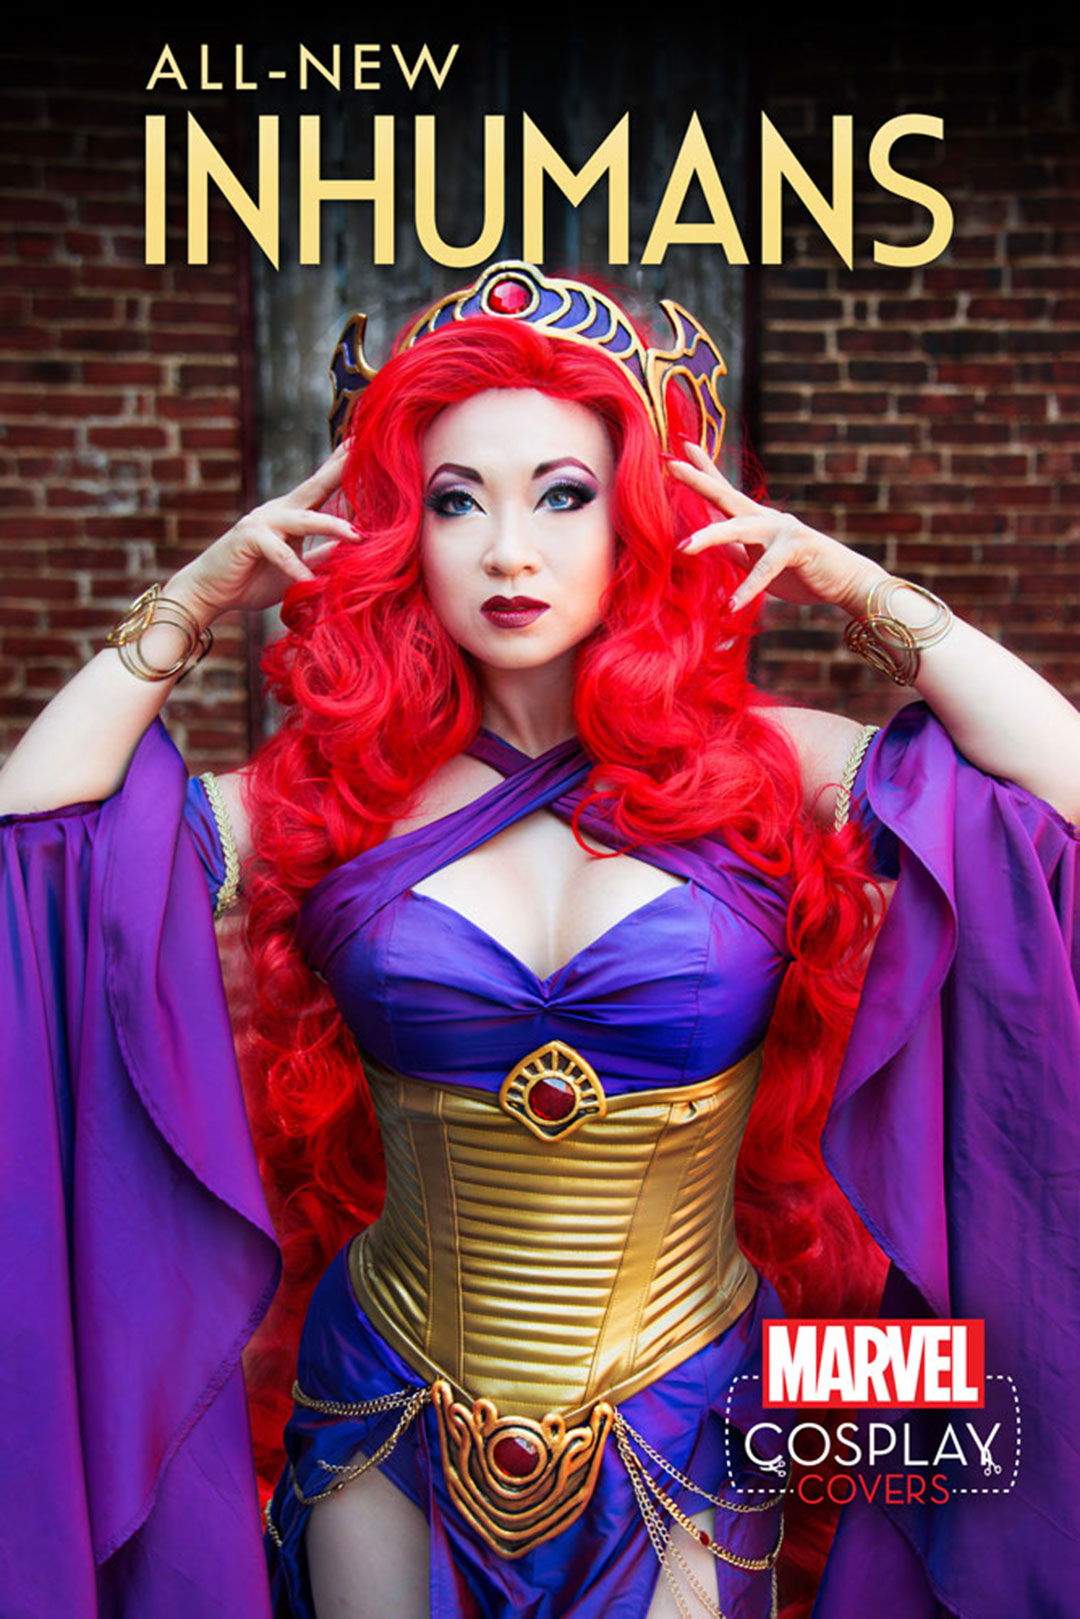 Couverture-Marvel-cosplay (15)